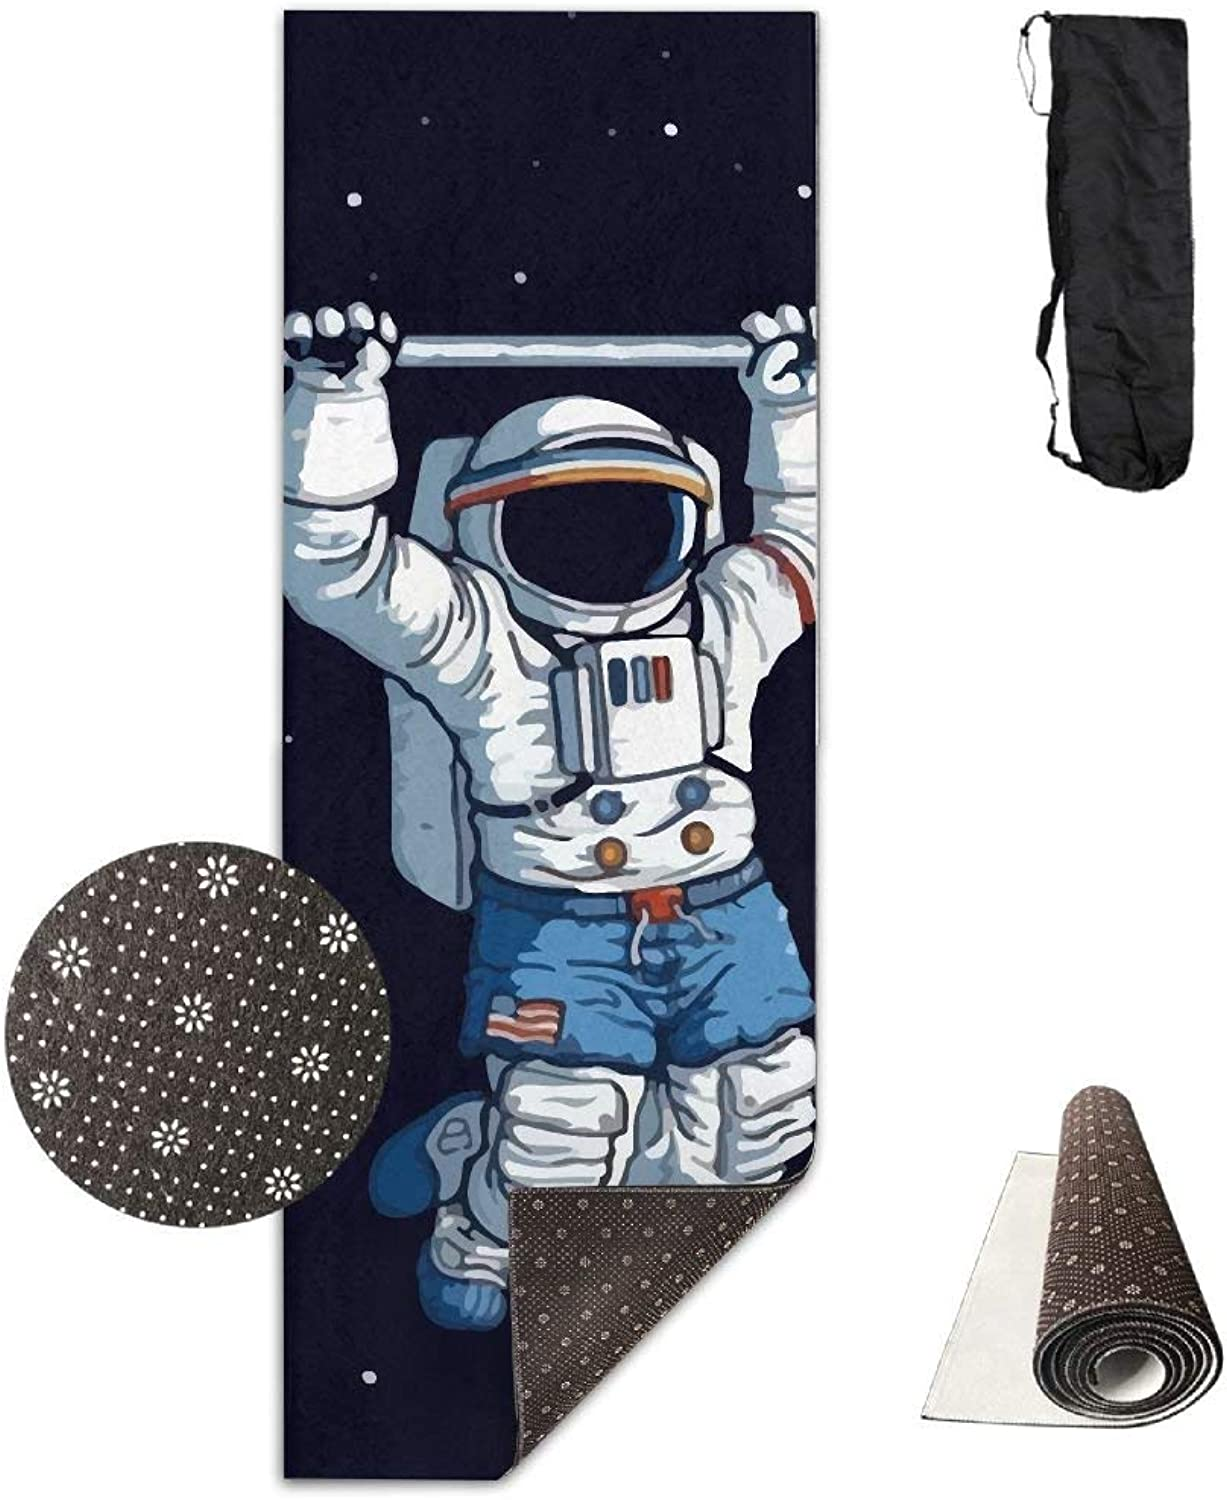 Astronauts On The International Space Station Exercise Yoga Mat  Advanced Yoga Mat  NonSlip Lining  Easy to Clean  LatexFree  Lightweight and Durable  Long 180 Width 61cm